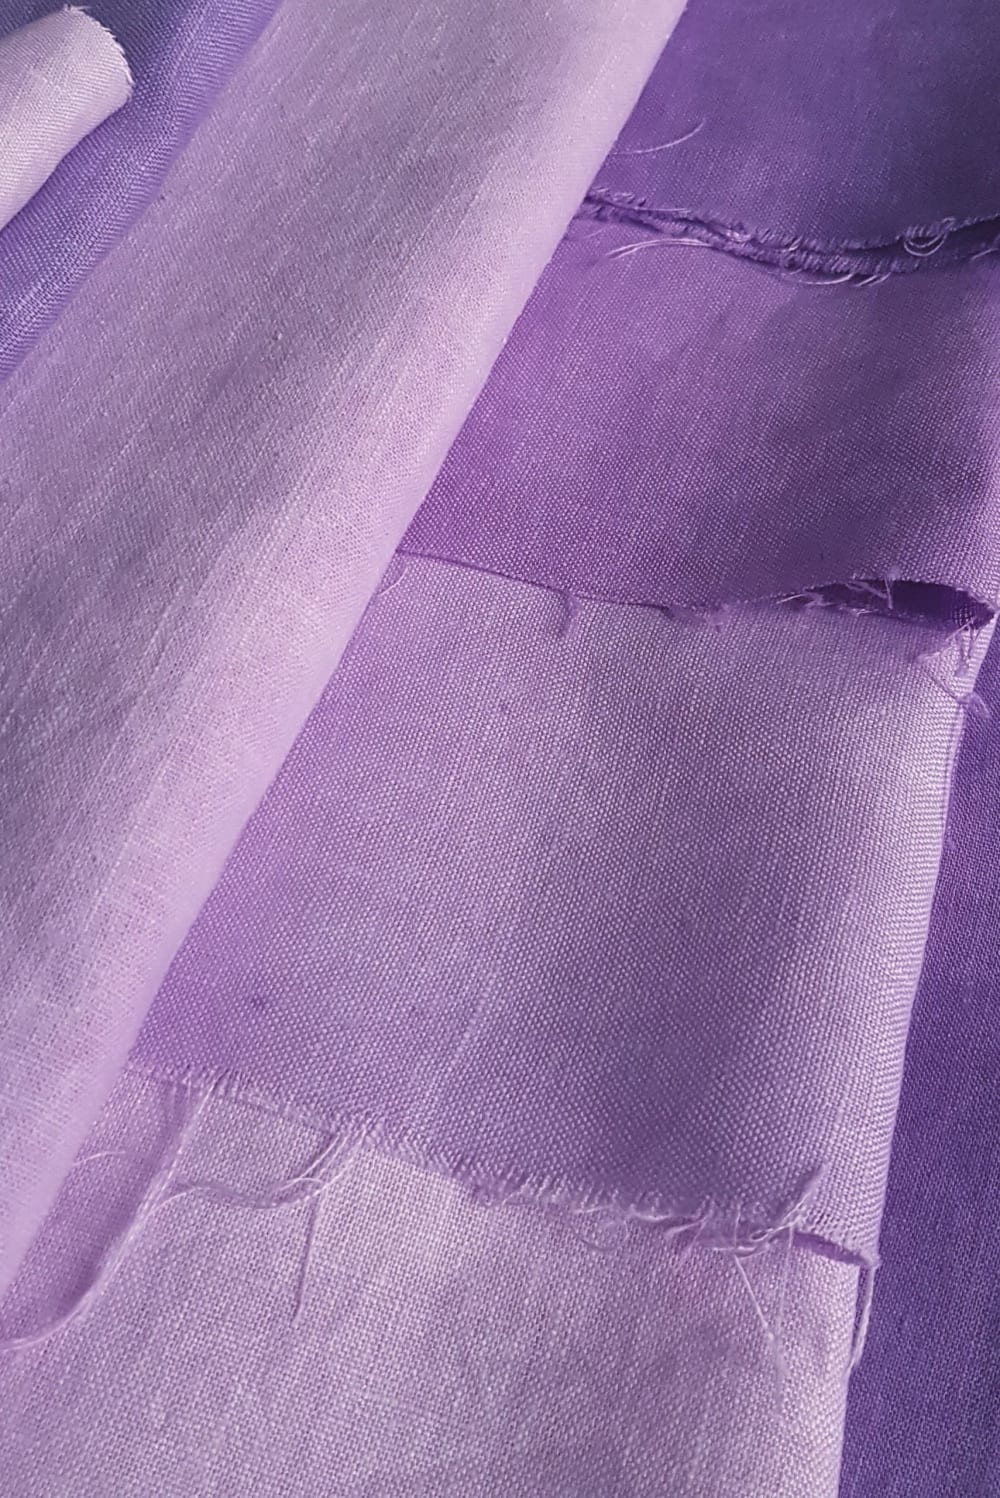 Deep Violet shades on Cut Couture linen hand dyed